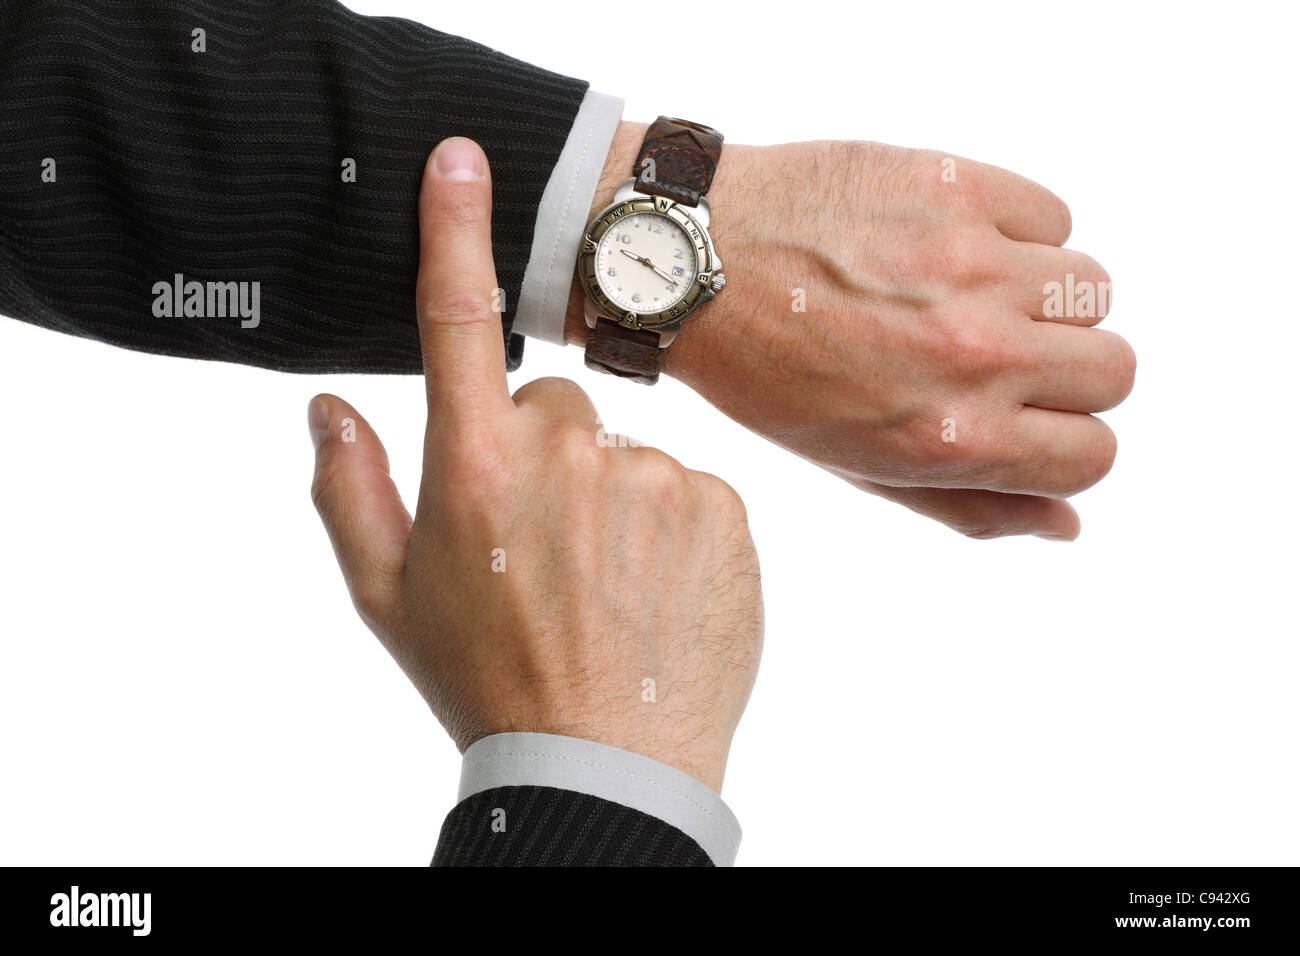 Checking the time - Stock Image